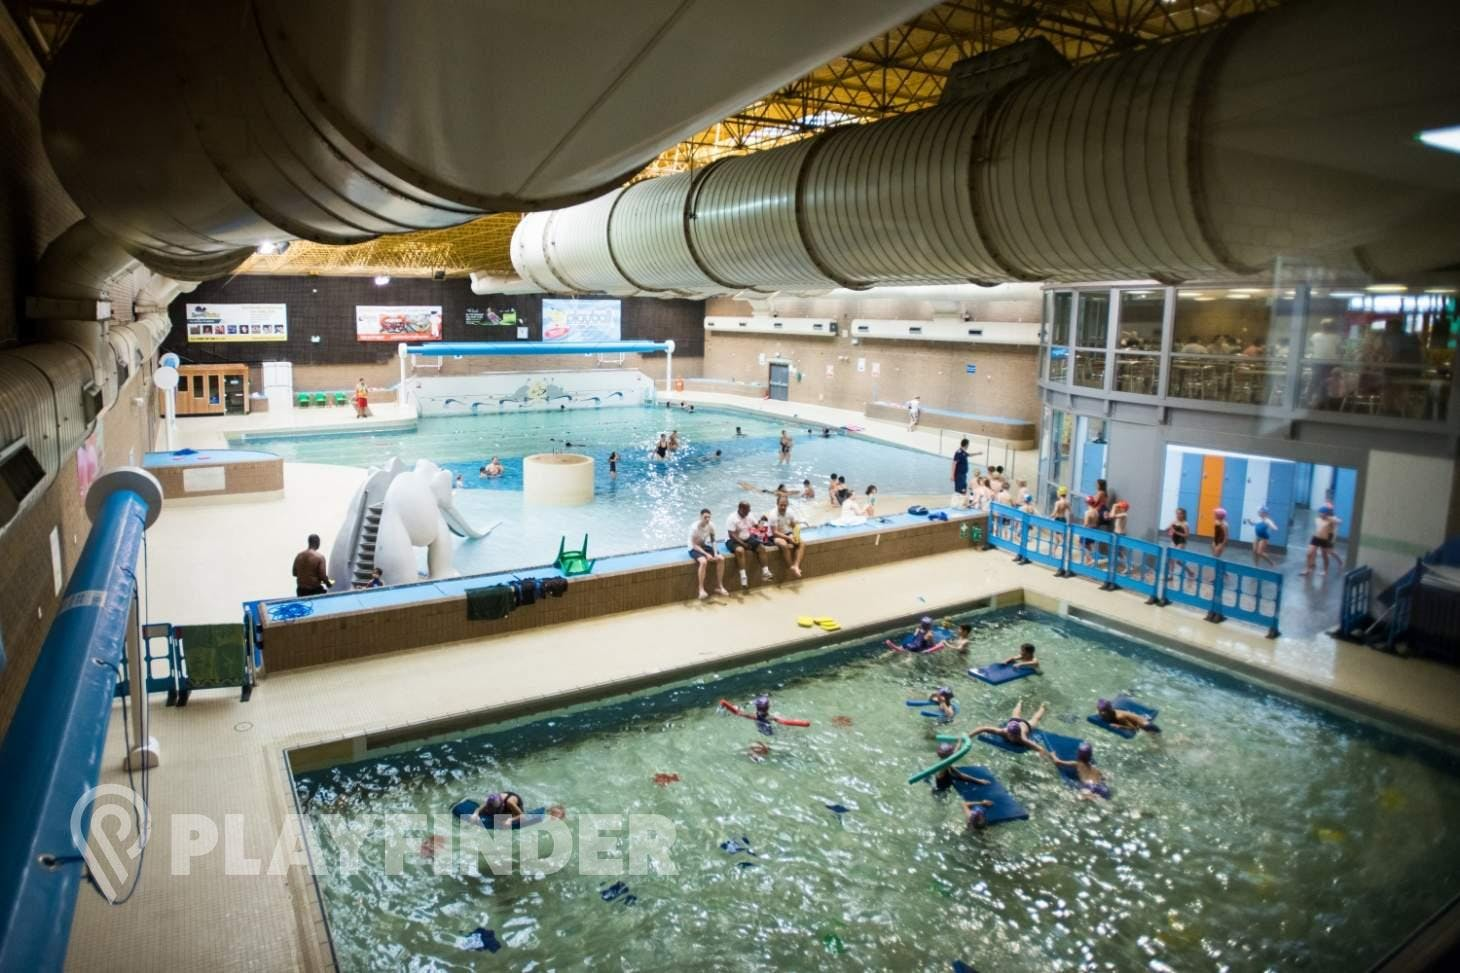 Latchmere Leisure Centre Indoor swimming pool